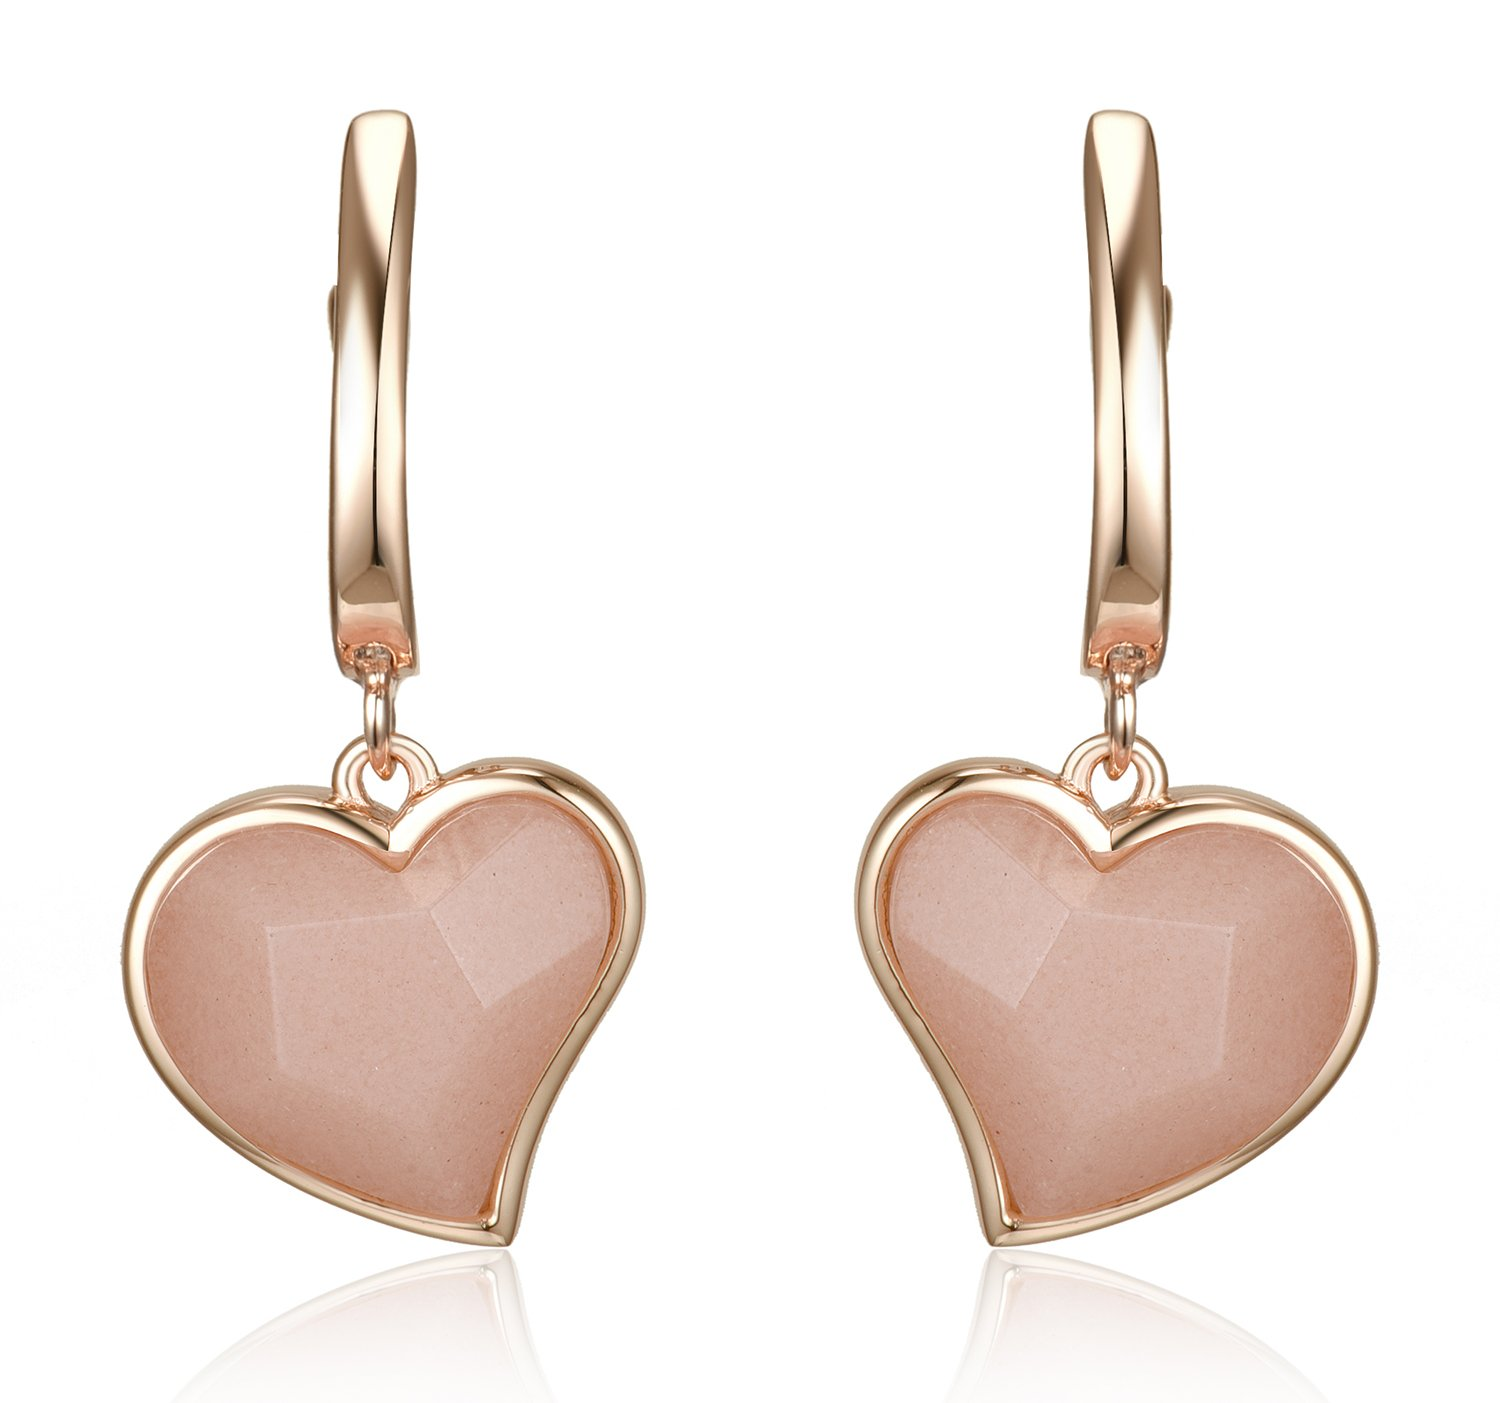 Lanfeny Rose Gold Plated 925 Sterling Silver Dangle Earrings with Natural Rose Quartz Heart Shape